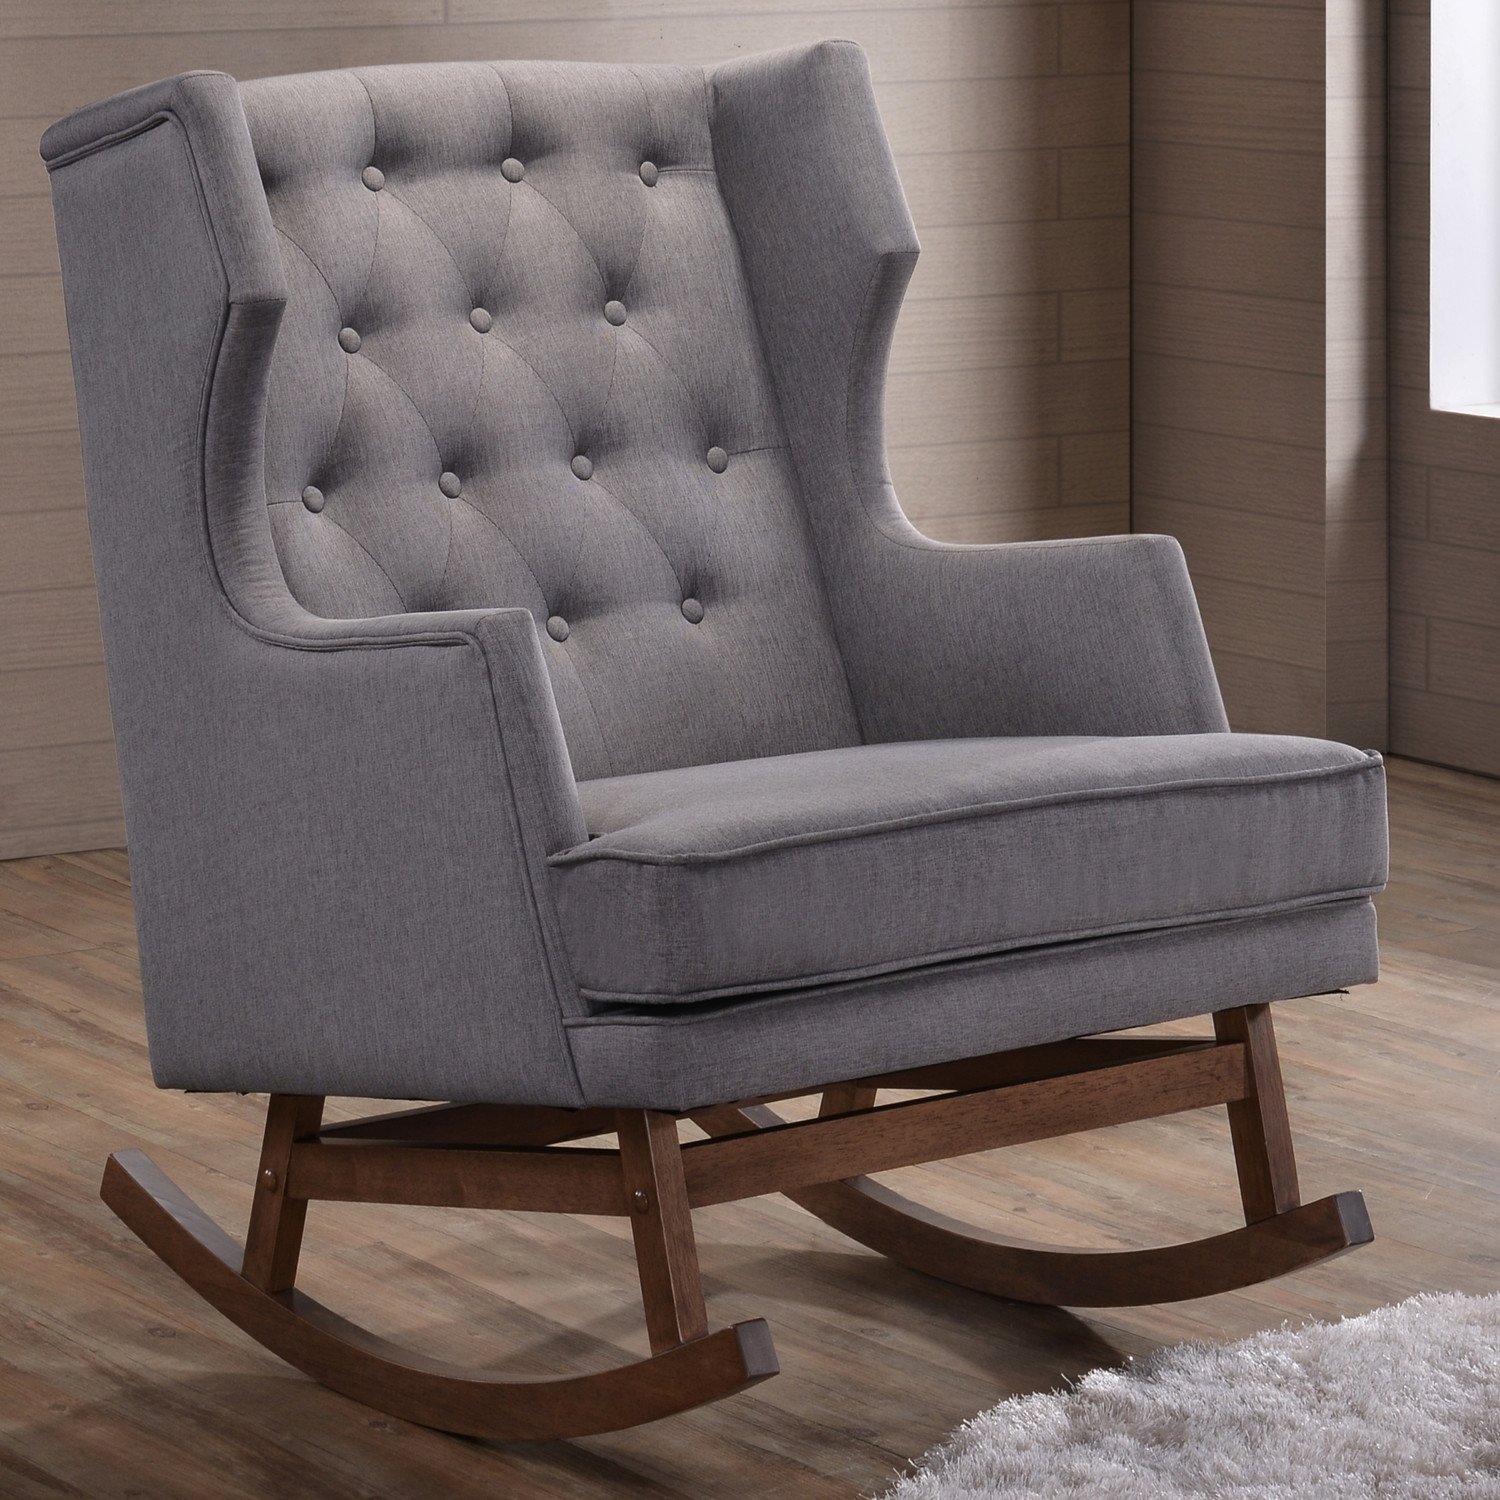 Furniture Beautiful Upholstered Rocking Chair For Home Furniture With Narrow Armchairs (Image 6 of 15)